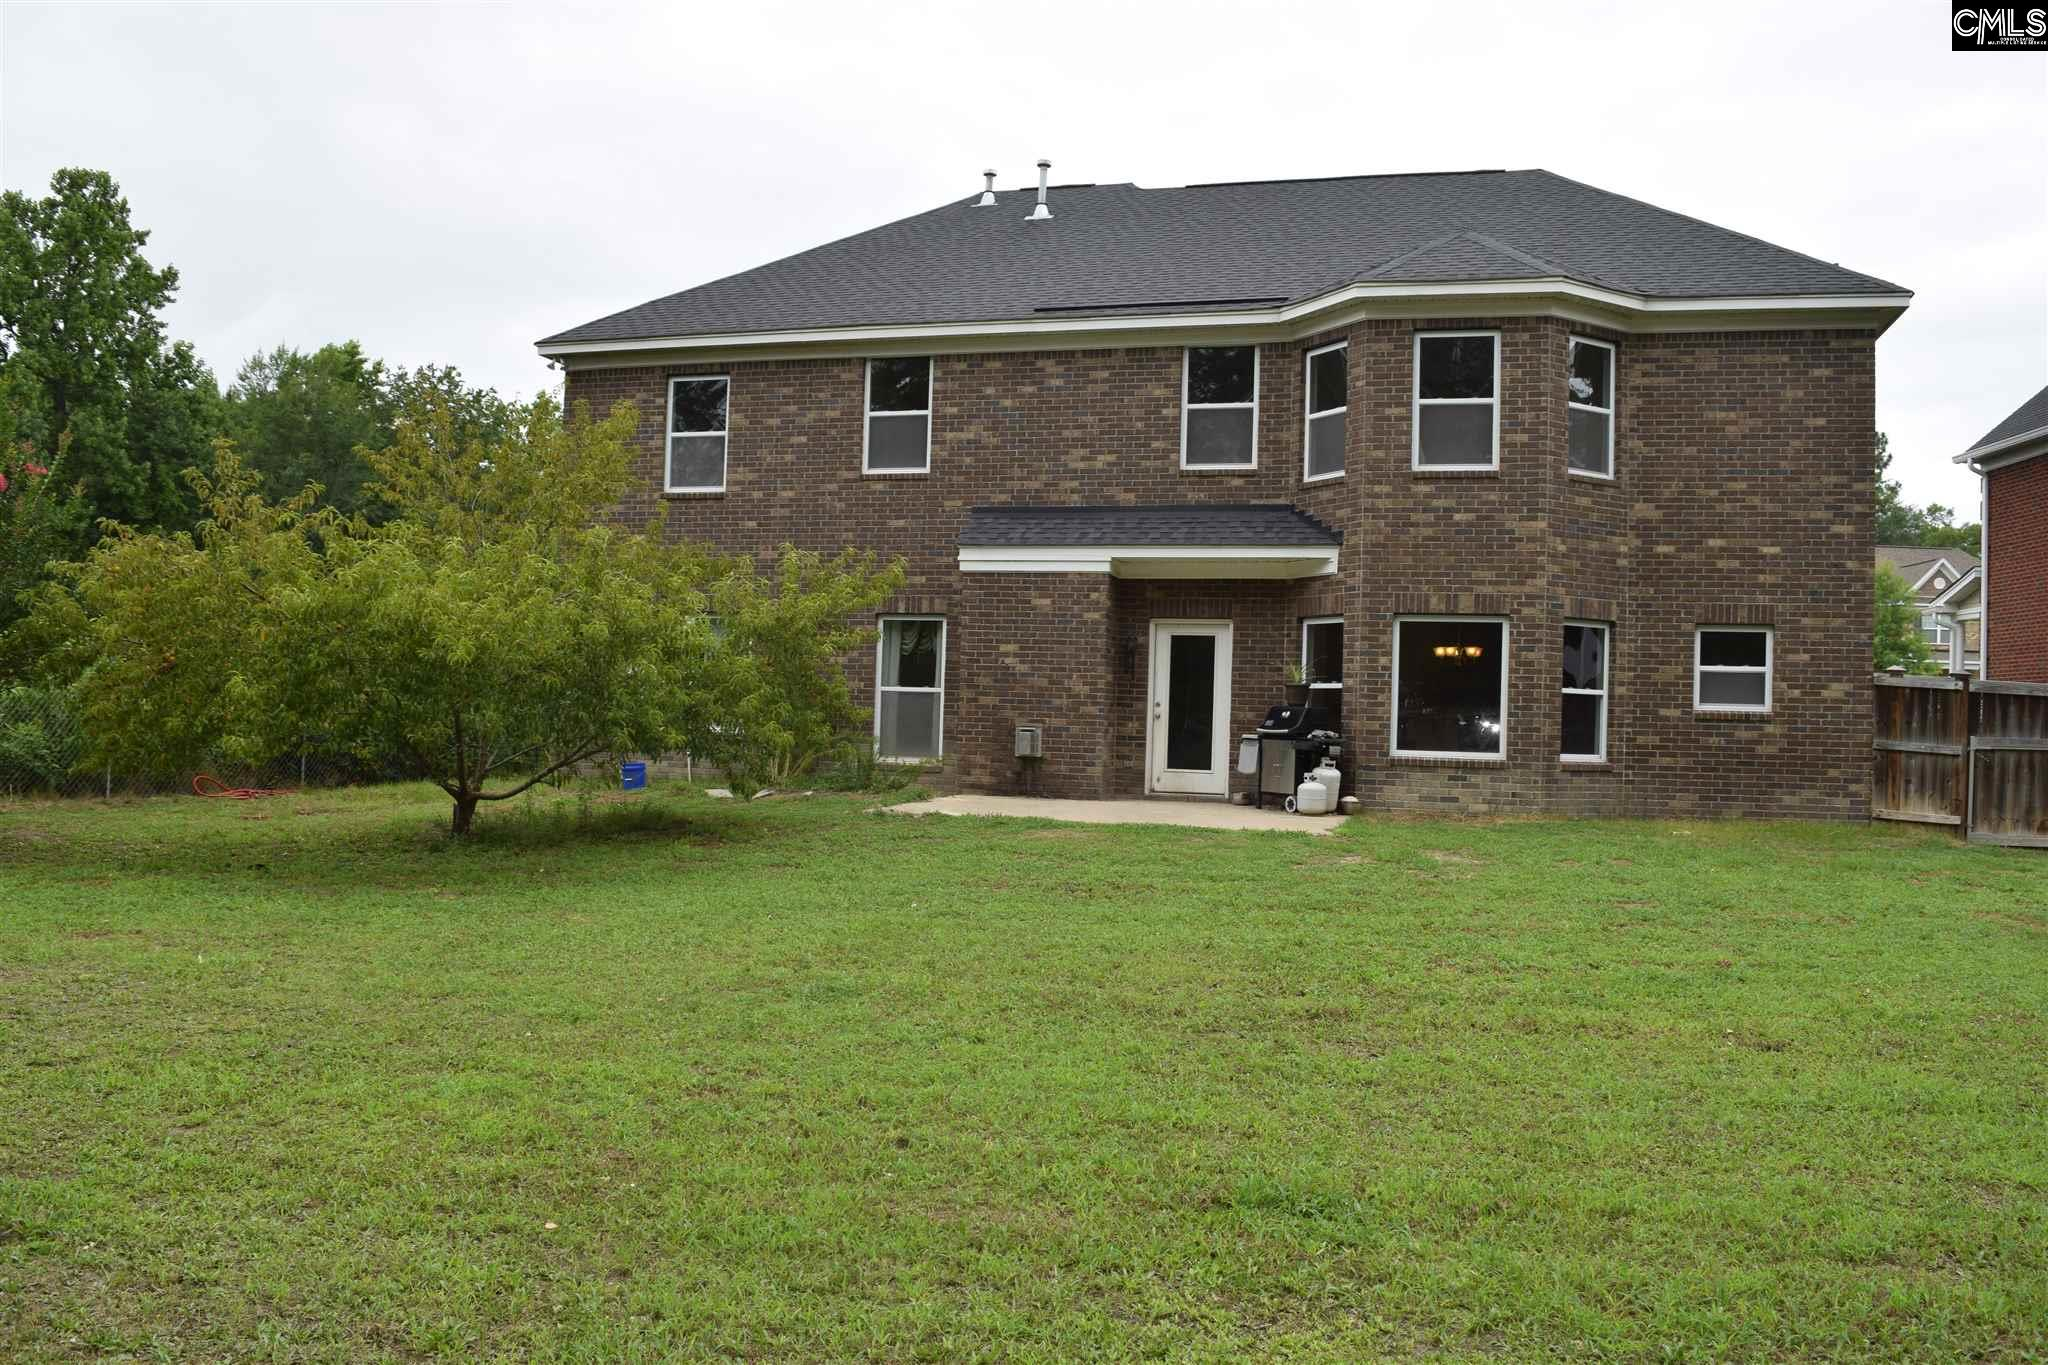 425 Pisgah Flats Lexington, SC 29072